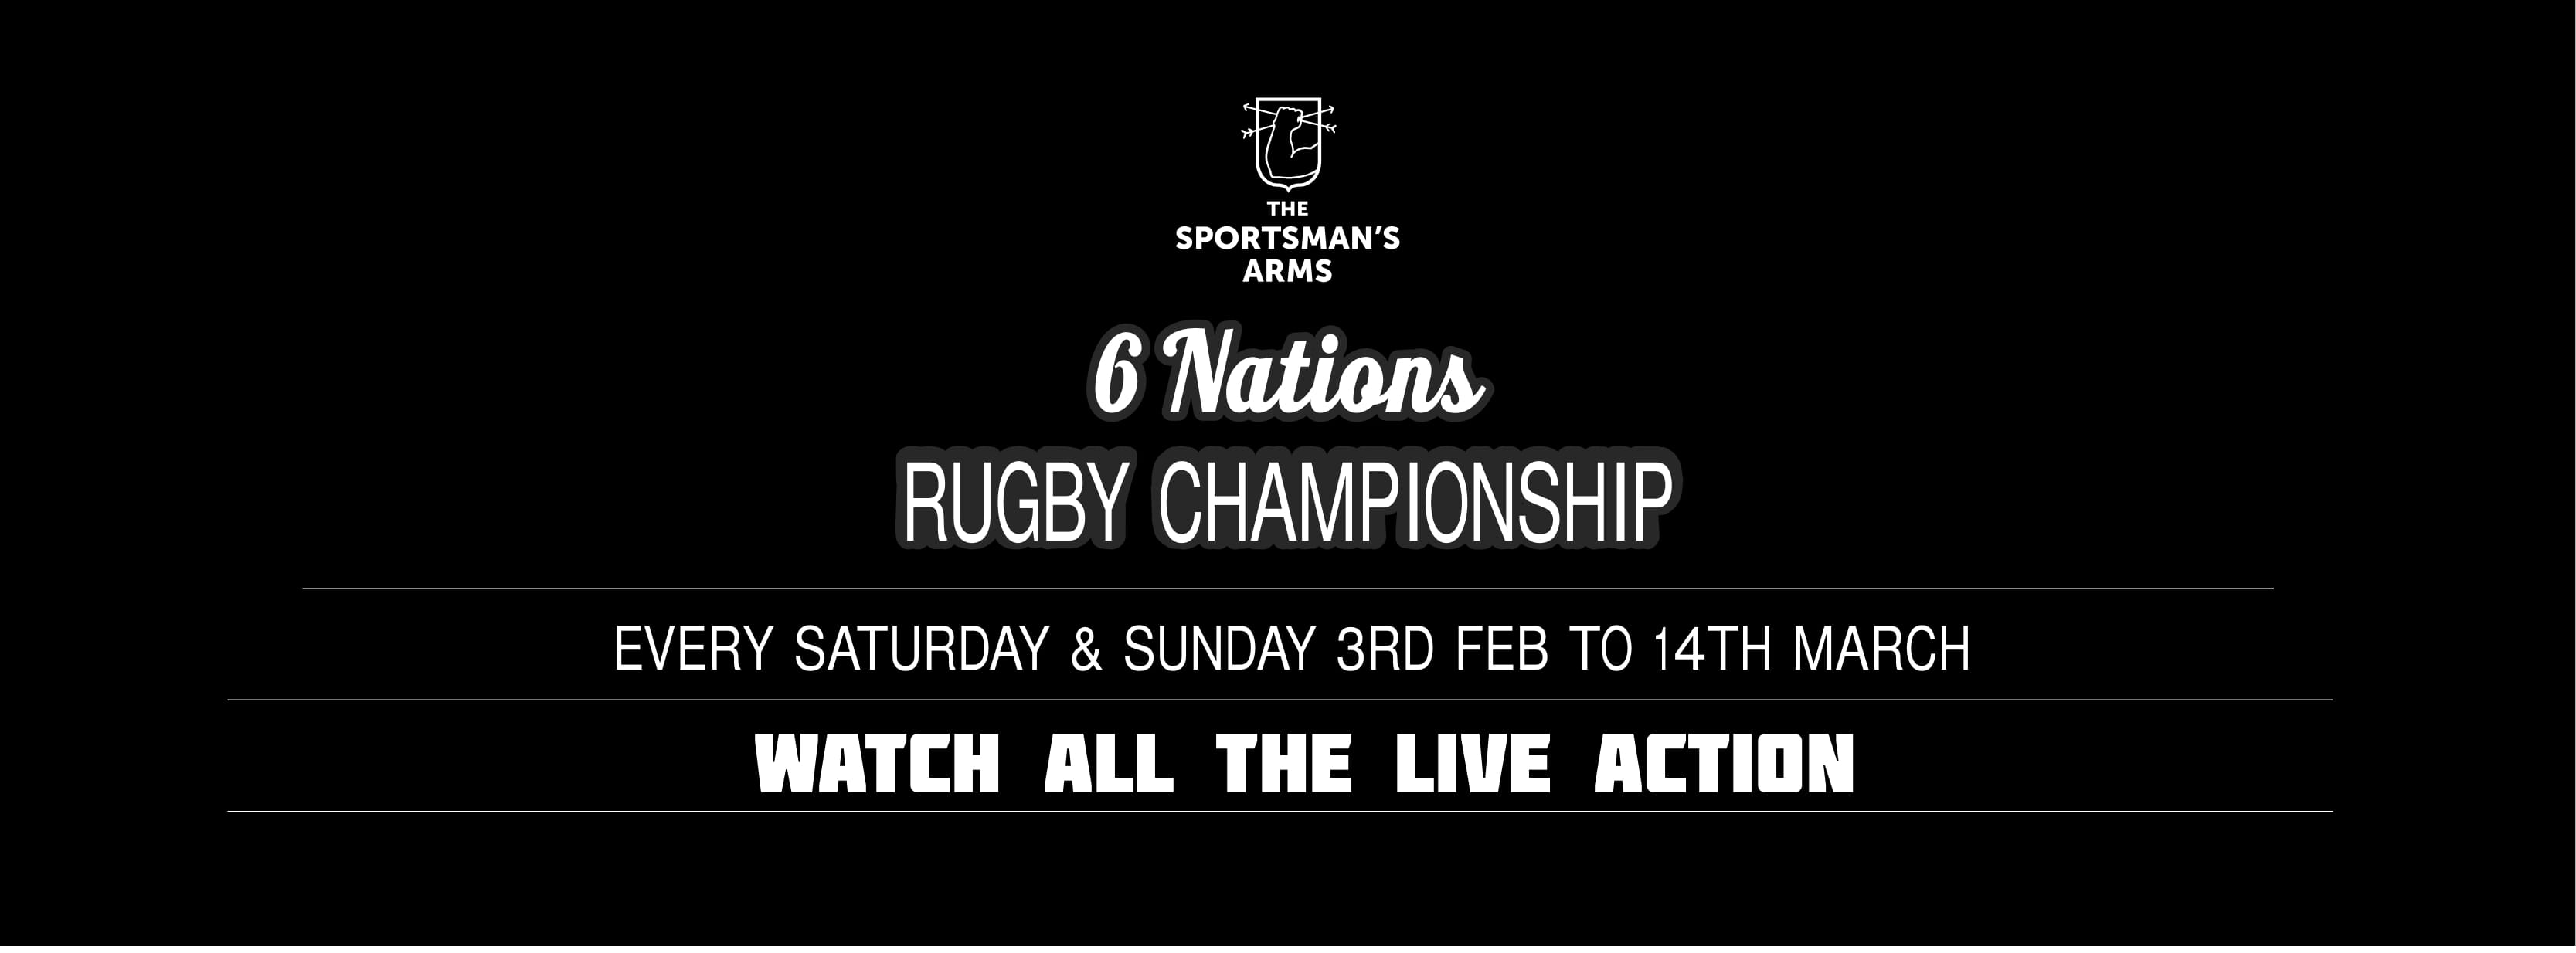 6 Nations Rugby Championship